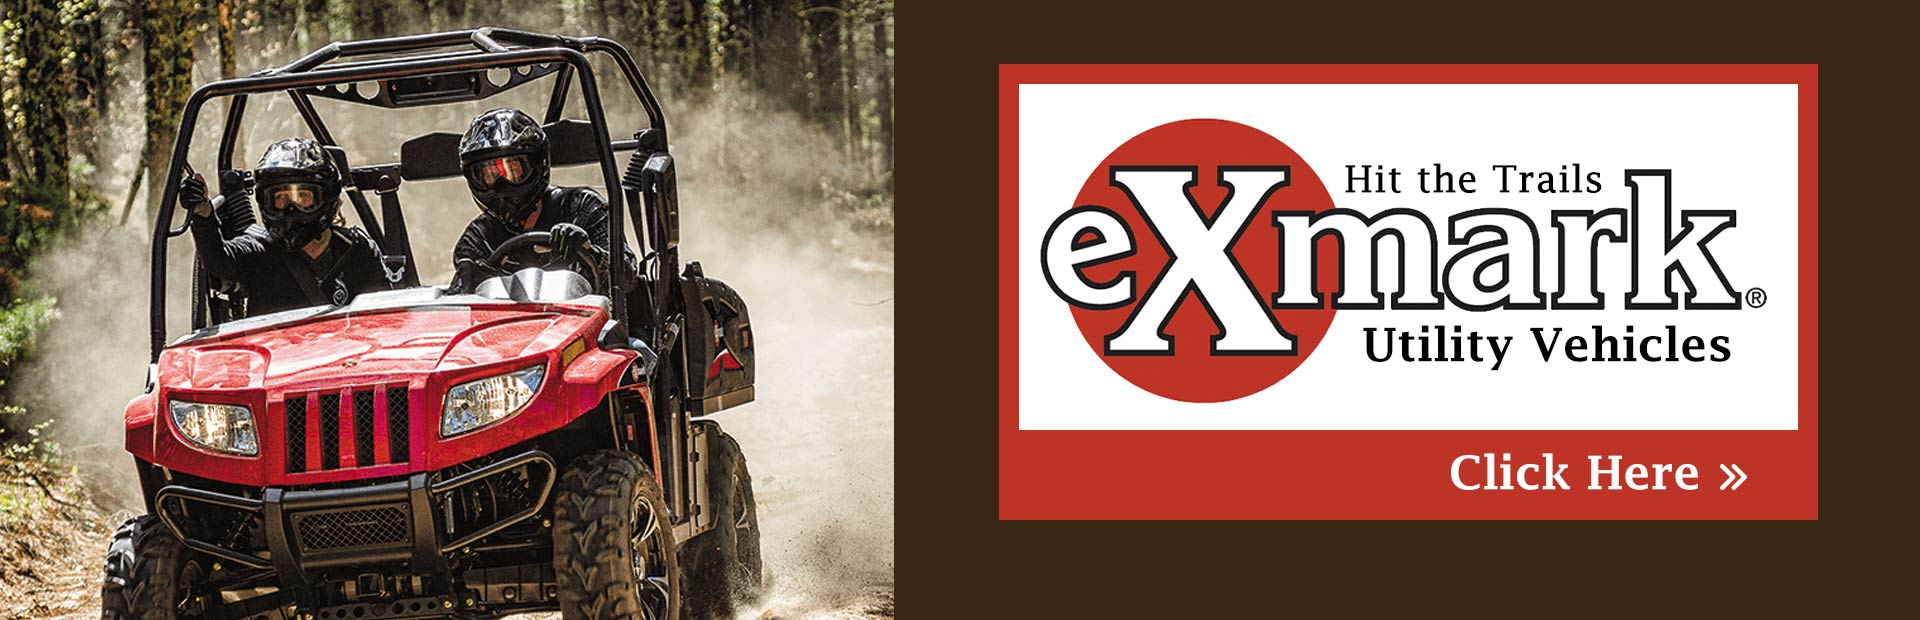 Click here to view our selection of Exmark utility vehicles!